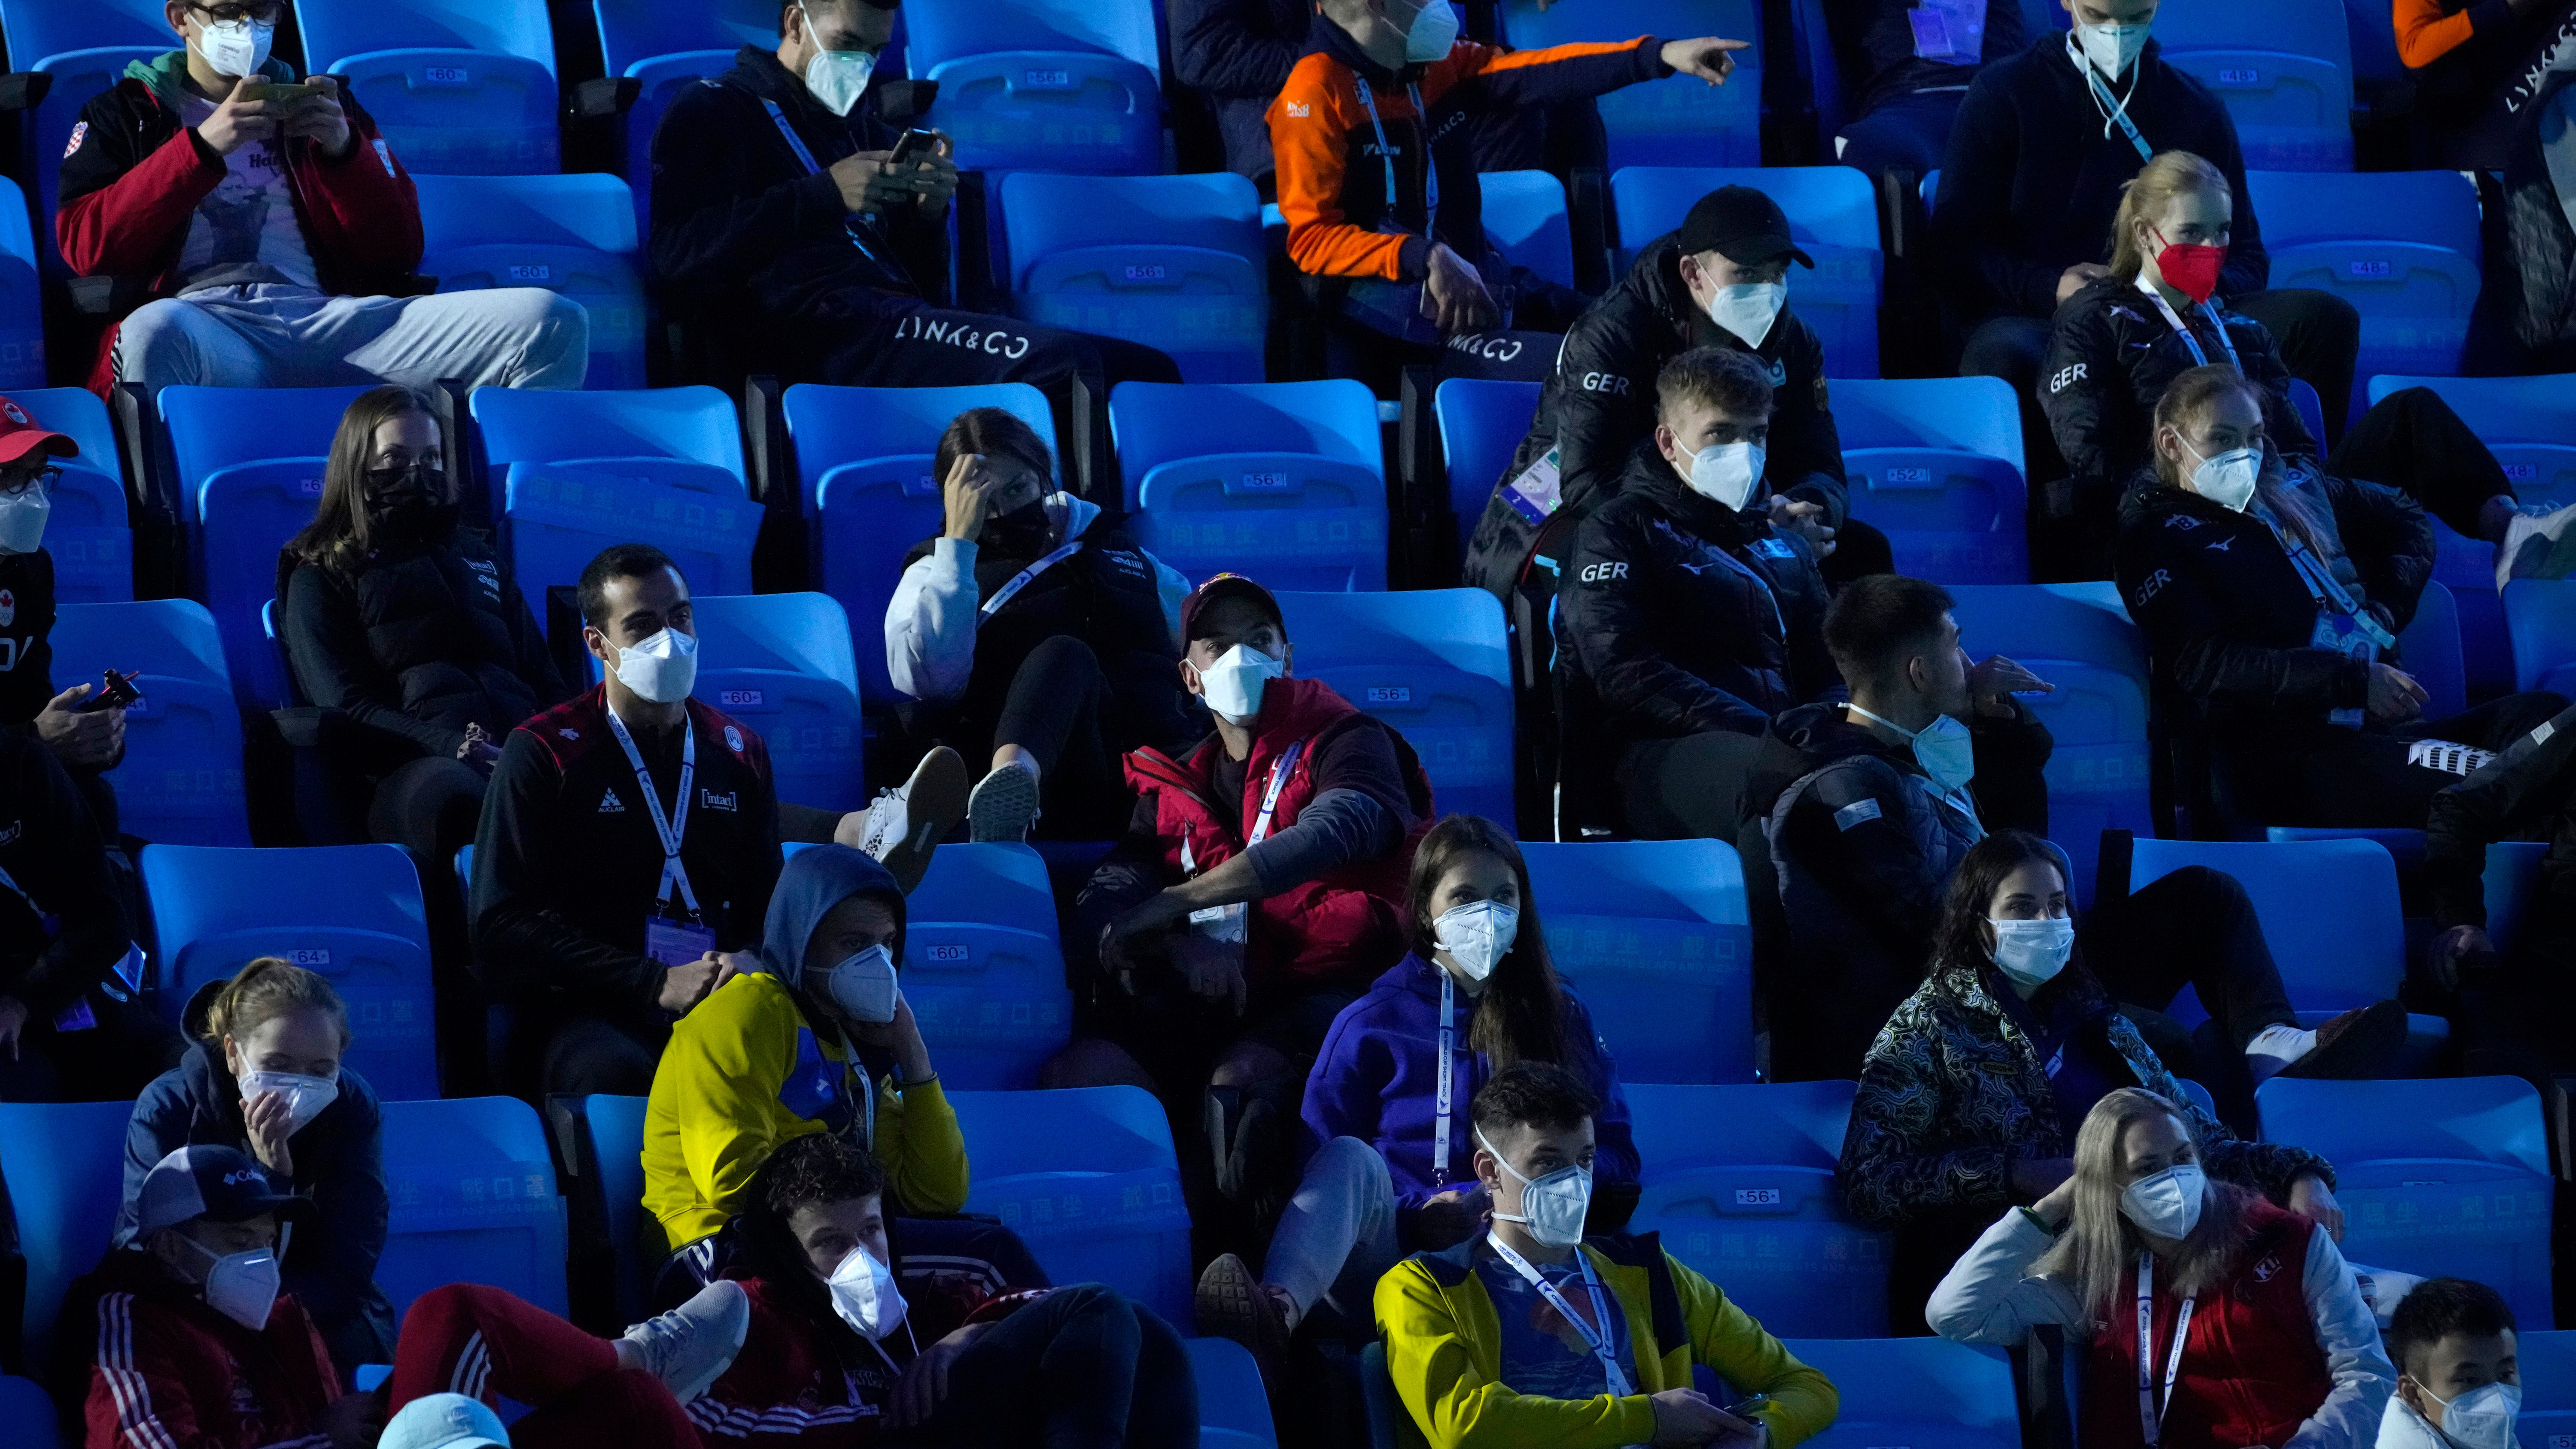 Athletes wearing face masks to protect against COVID-19 and sitting distanced from each other watch the action at the ISU World Cup Short Track speed skating competition, a test event for the 2022 Winter Olympics, at the Capital Indoor Stadium in Beijing, Sunday, Oct. 24, 2021.